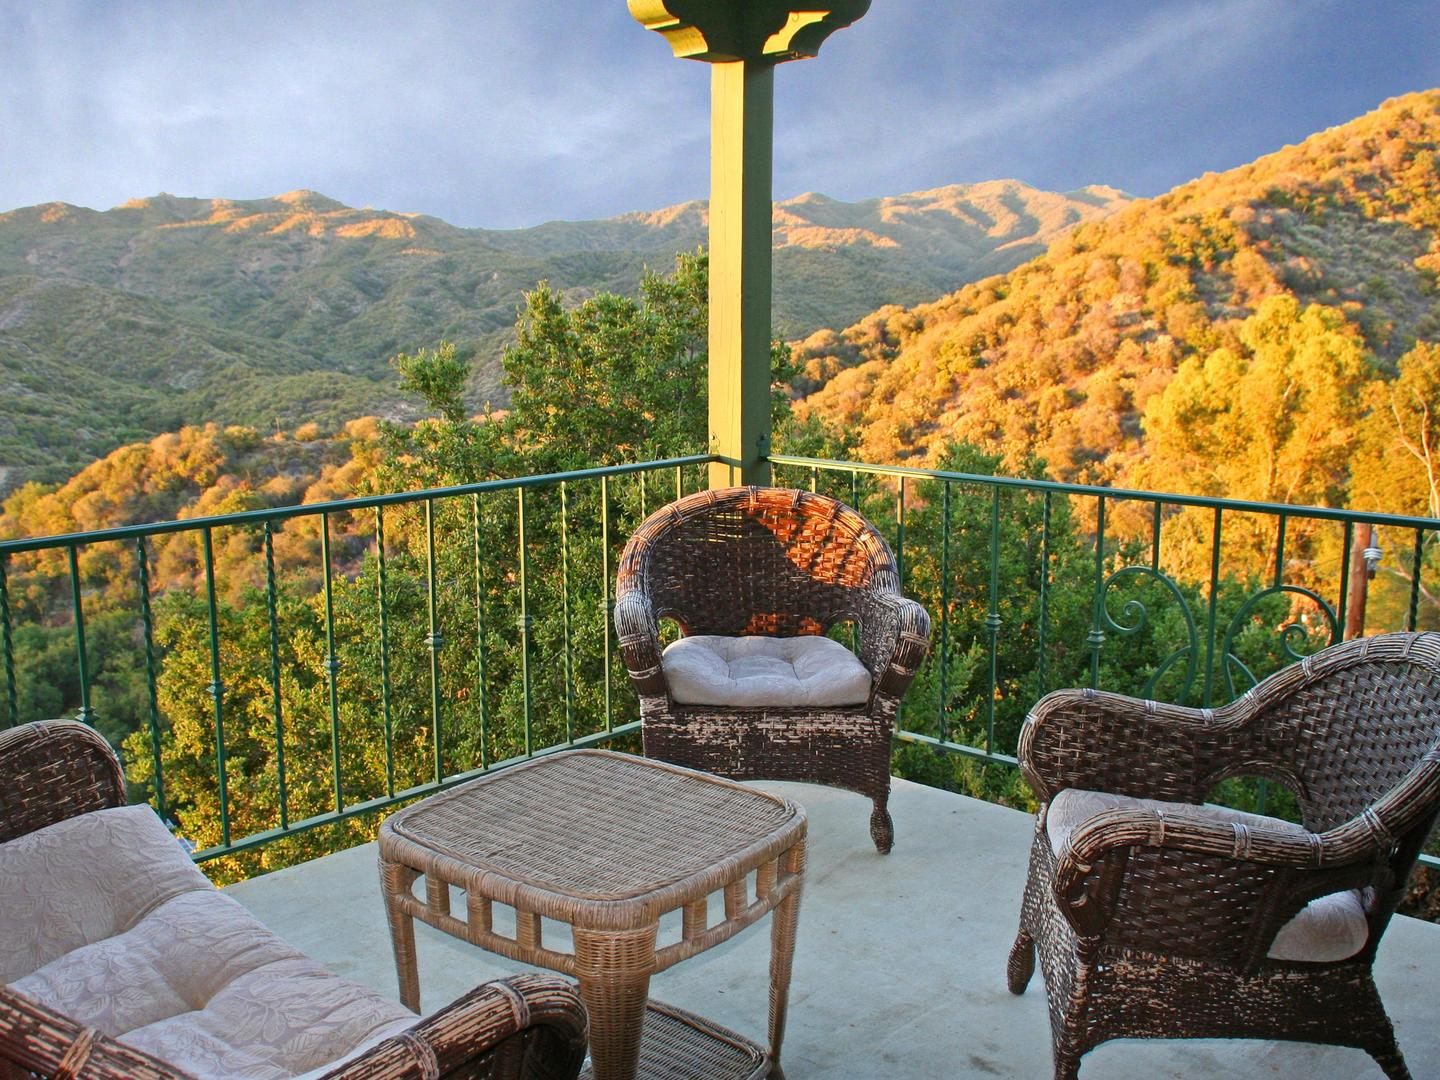 A view of a living room with a mountain in the background at Topanga Canyon Inn Bed and Breakfast.